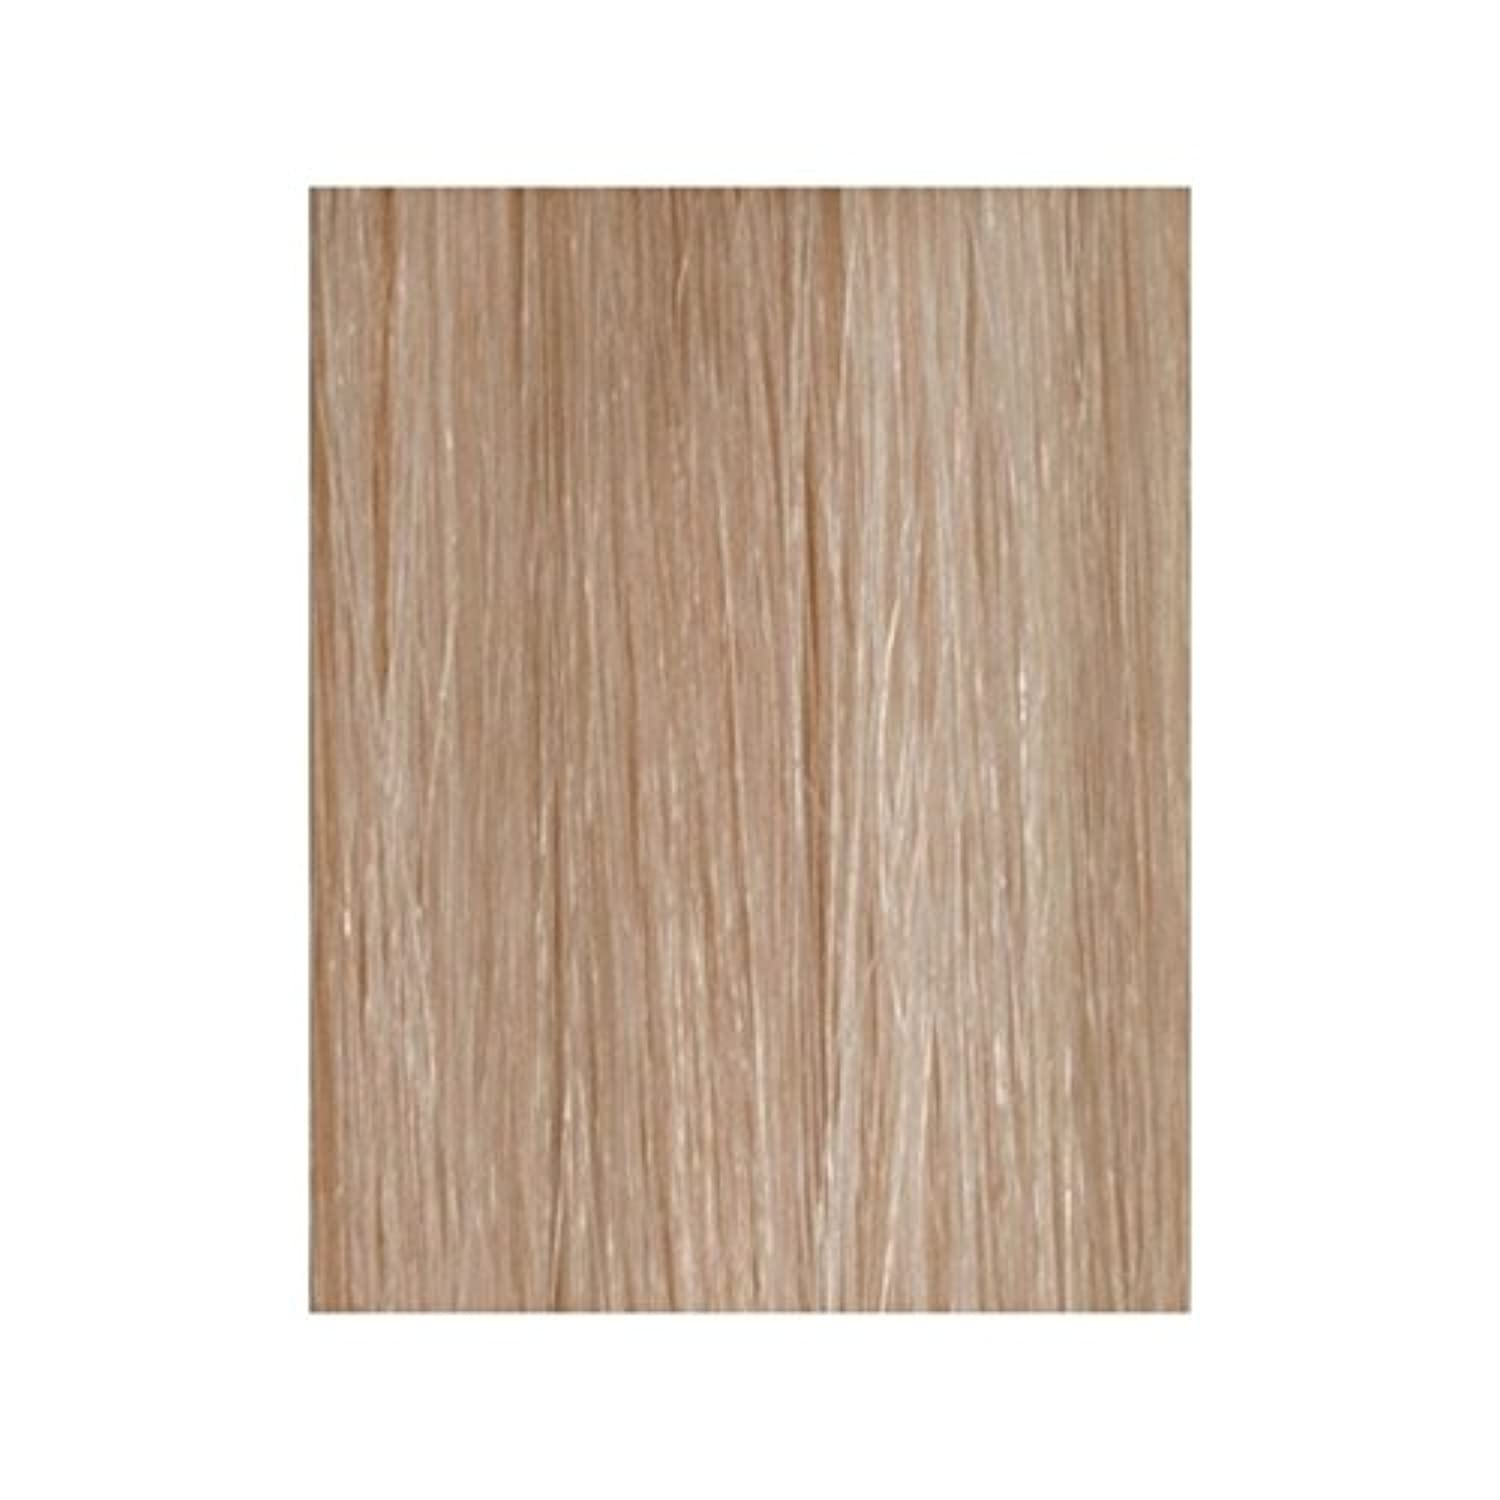 Beauty Works 100% Remy Colour Swatch Hair Extension - Champagne Blonde 613/18 - 美しさは、100%レミー色見本のヘアエクステンションの作品 - シャンパンブロンド18分の613 [並行輸入品]